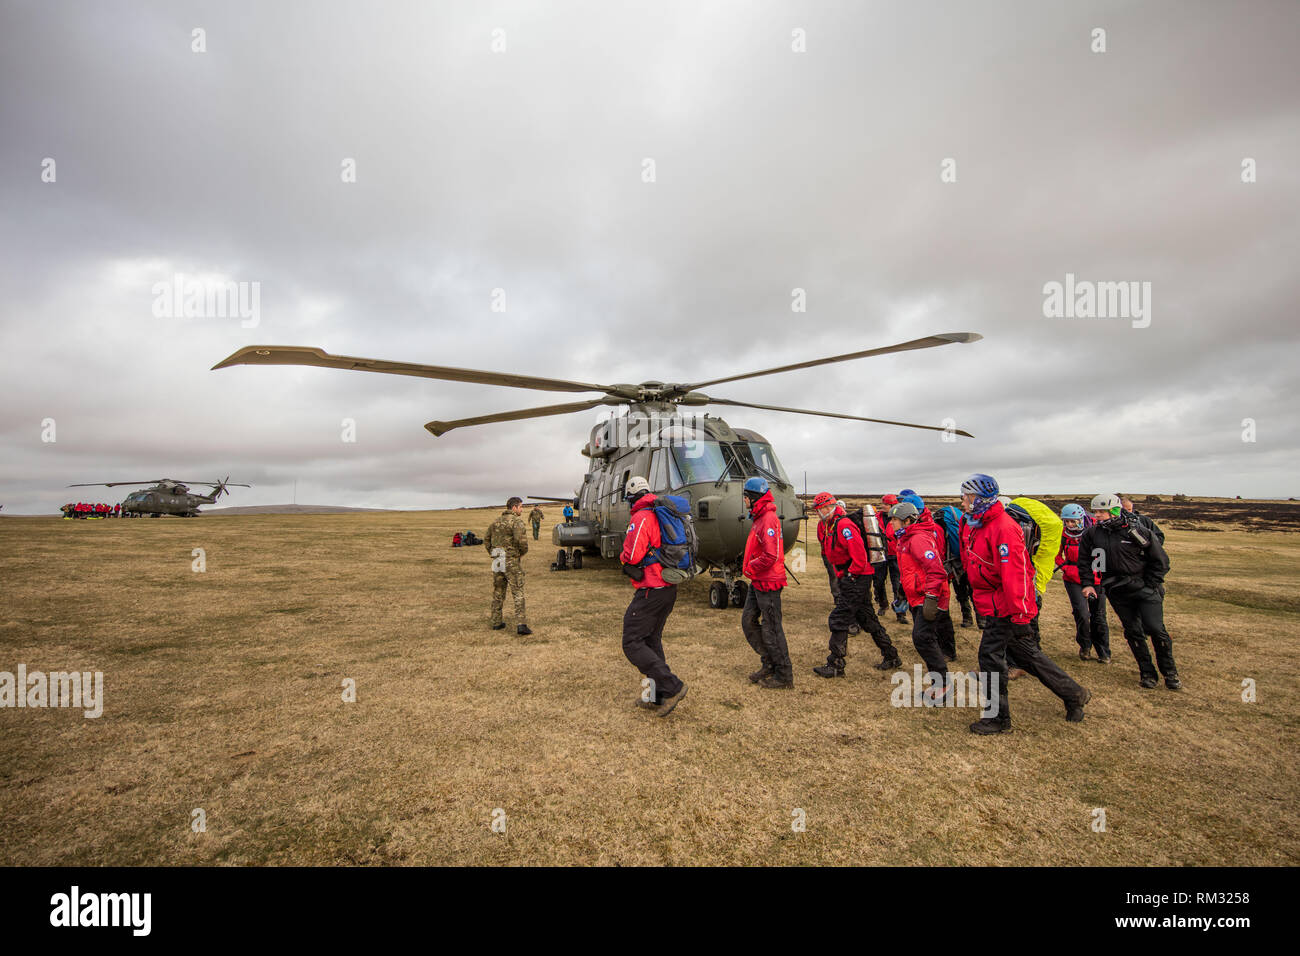 The Dartmoor Rescue running excersises with two helicopters over on Whitchurch Common, Dartmoor. - Stock Image